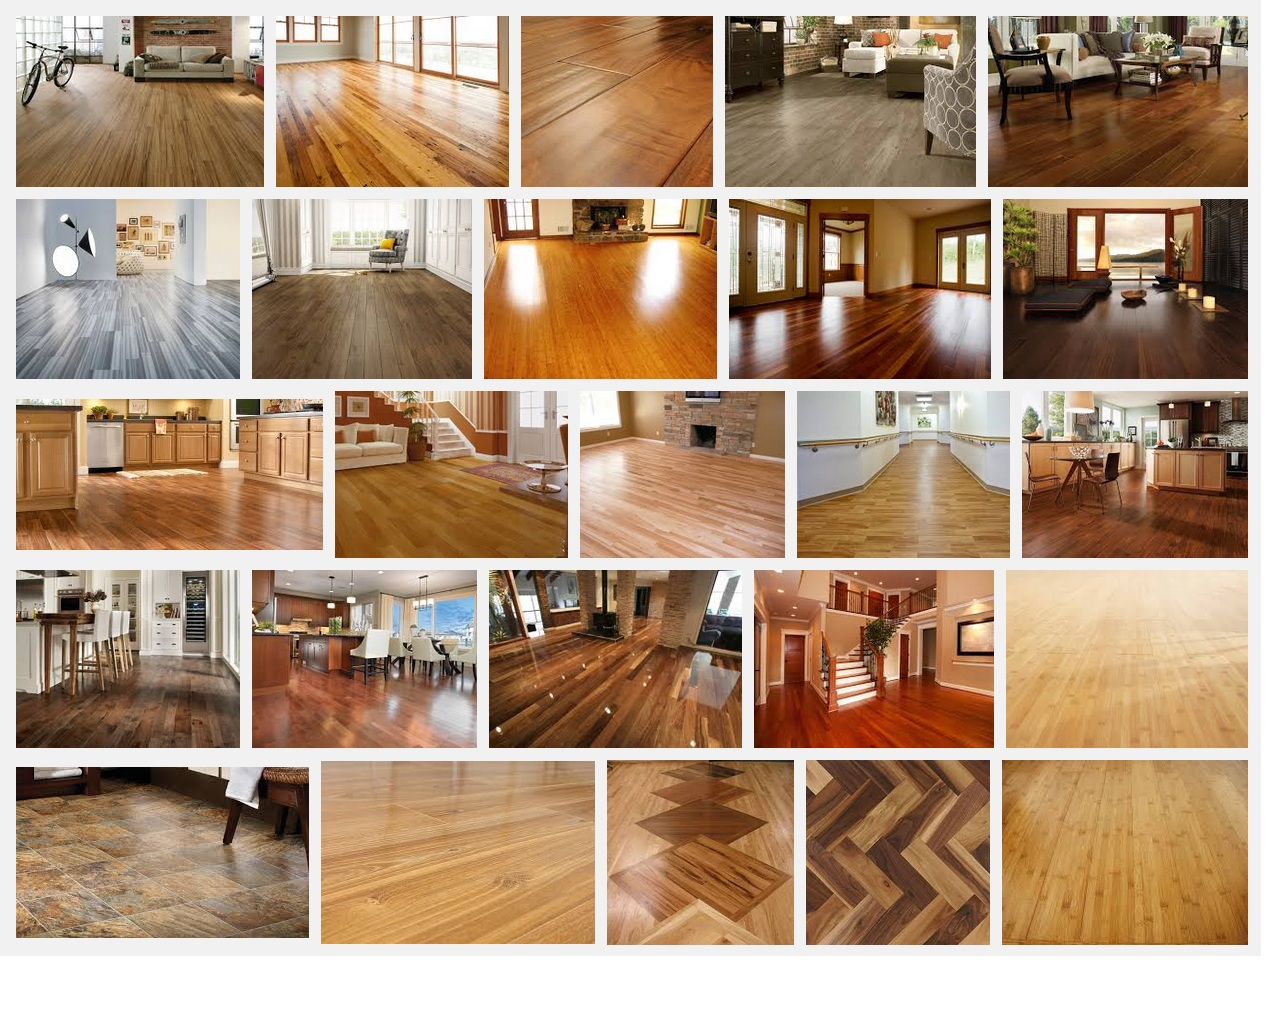 Solid wood floors versus engineered wood - Floor D The Main Difference Between Solid Wood Flooring And Engineered Wood Flooring Is The Composition